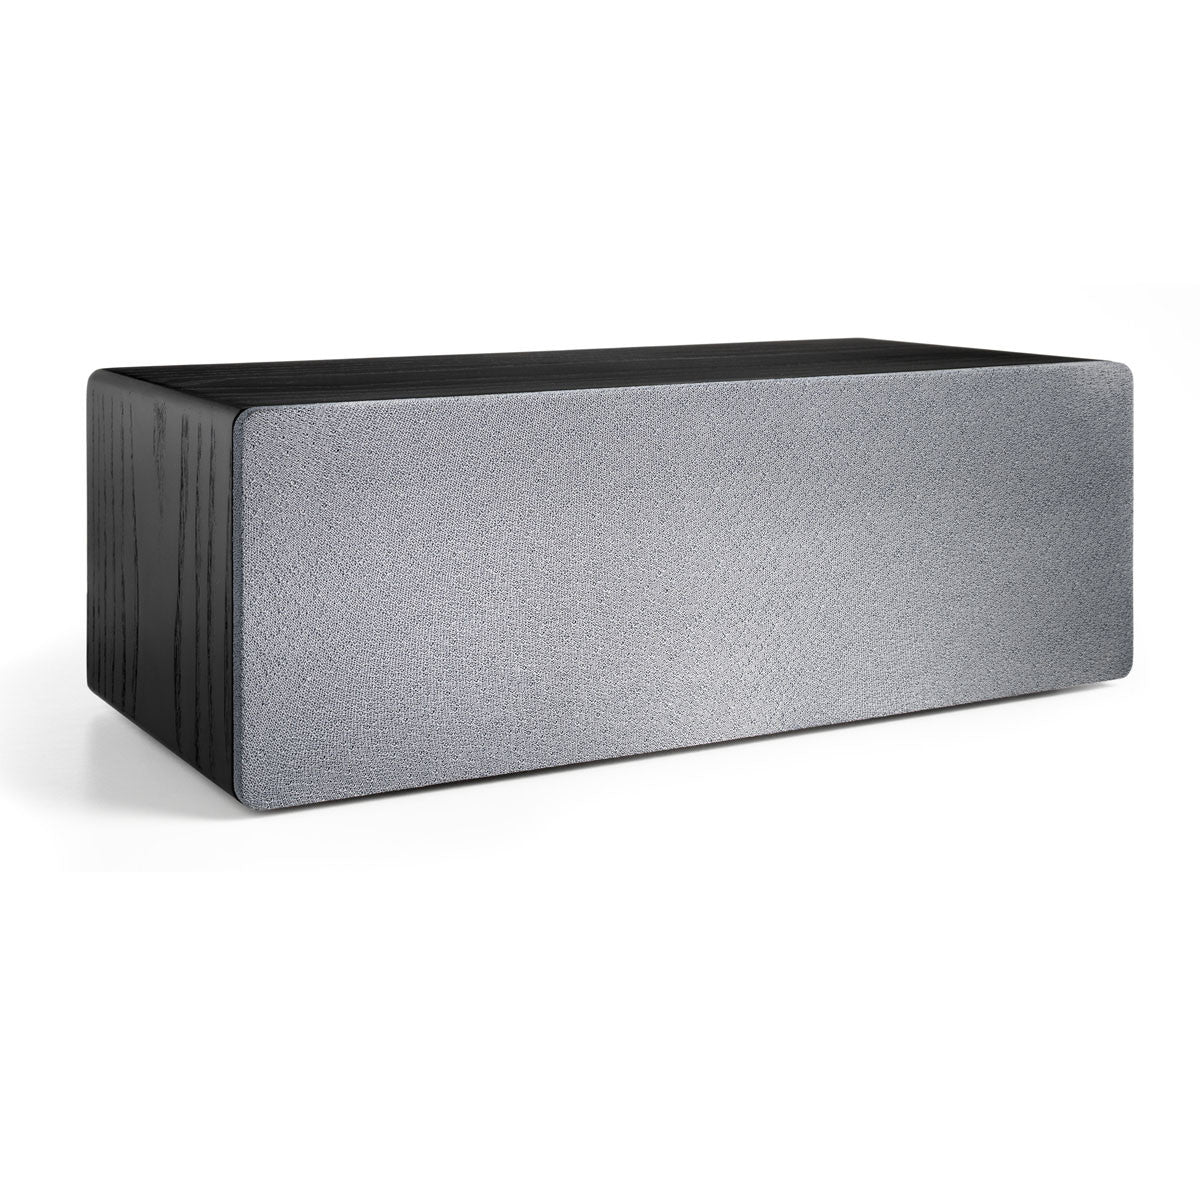 Audioengine: B2 Bluetooth Desktop Speaker - Black Ash grill